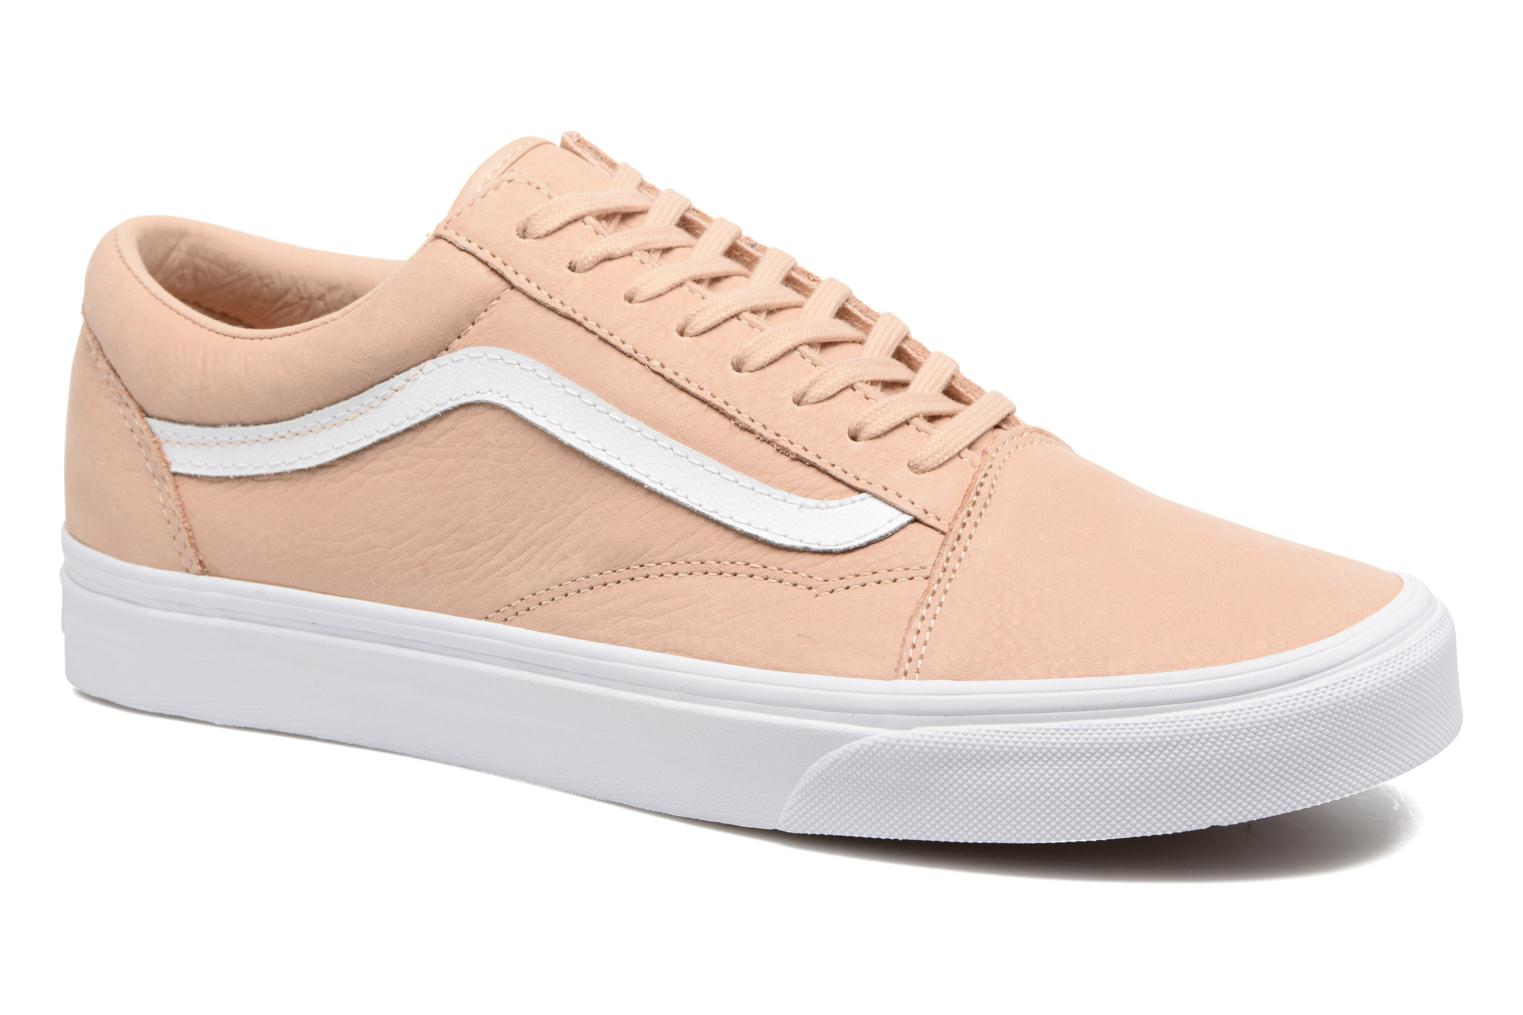 Old Skool (Leather) Toasted Almond/True White